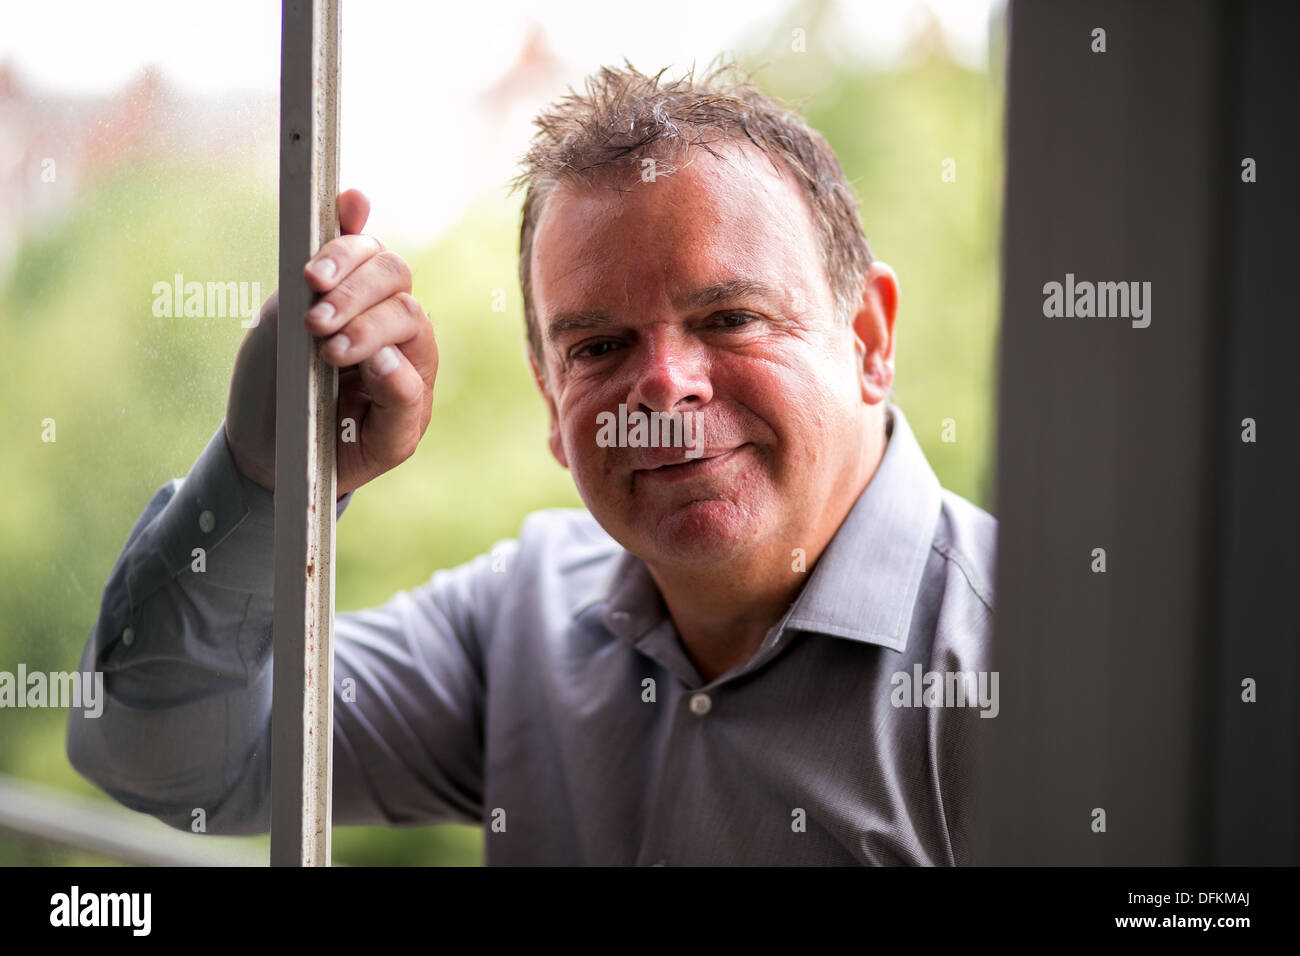 15/07/13 Tony Nutall from Southern Fried Chicken at the company office in Southport - Stock Image